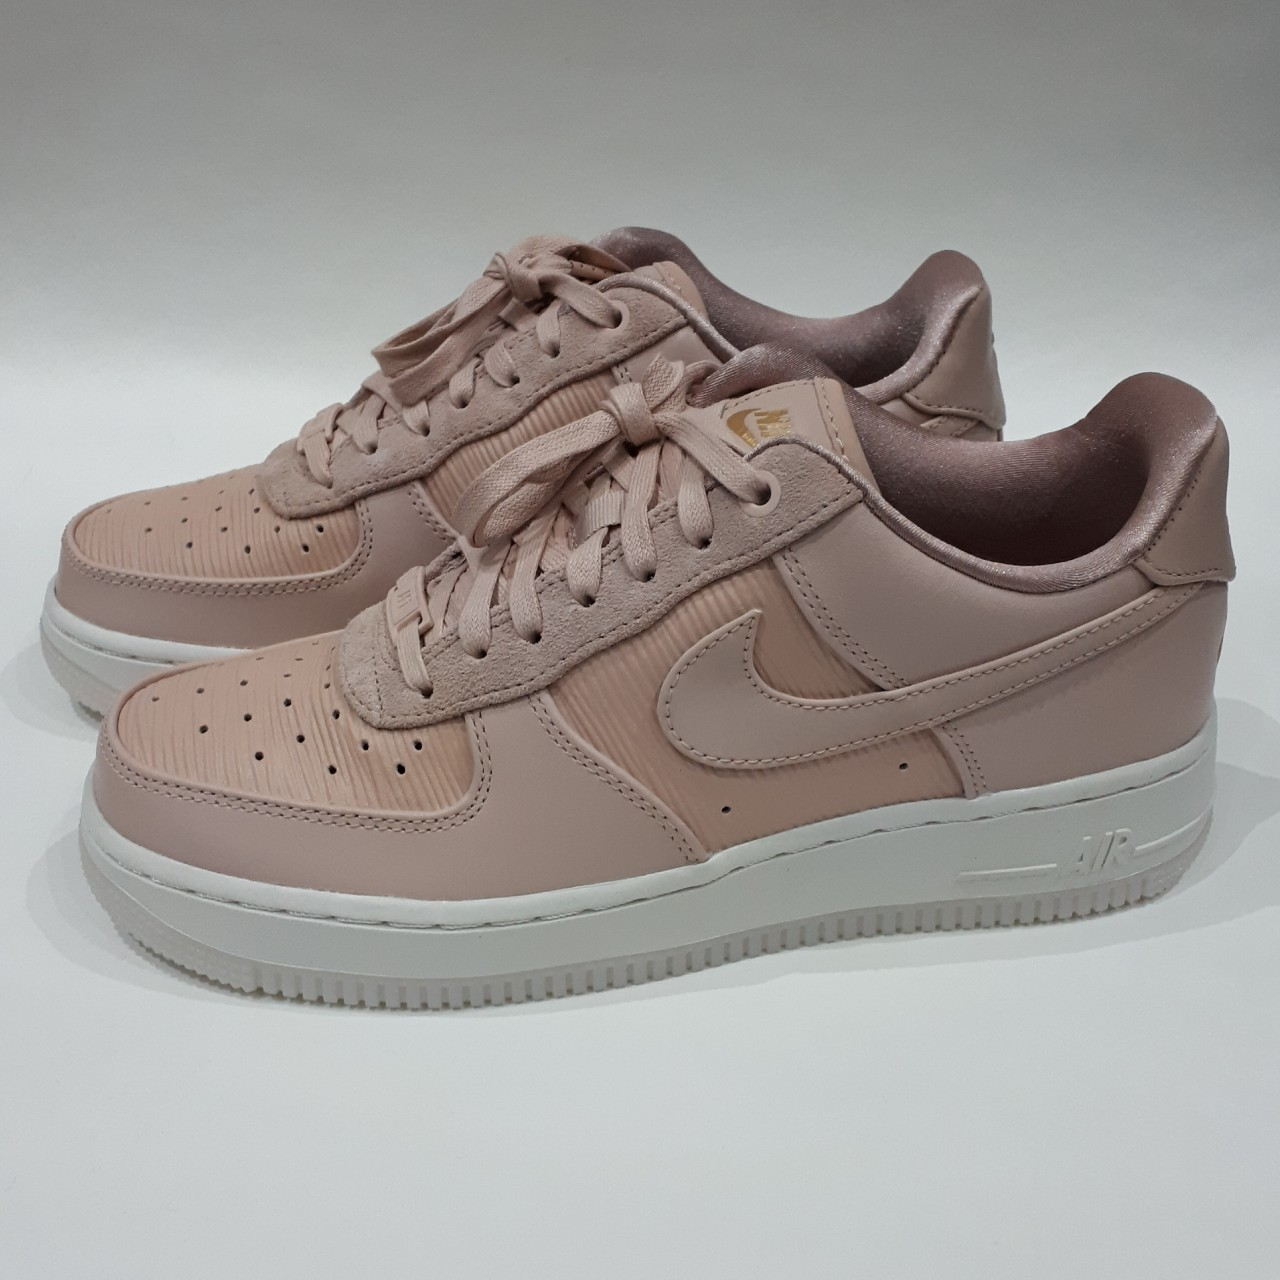 Nike Air Force 1 '07 Lux Particle Beigeparticle Beige